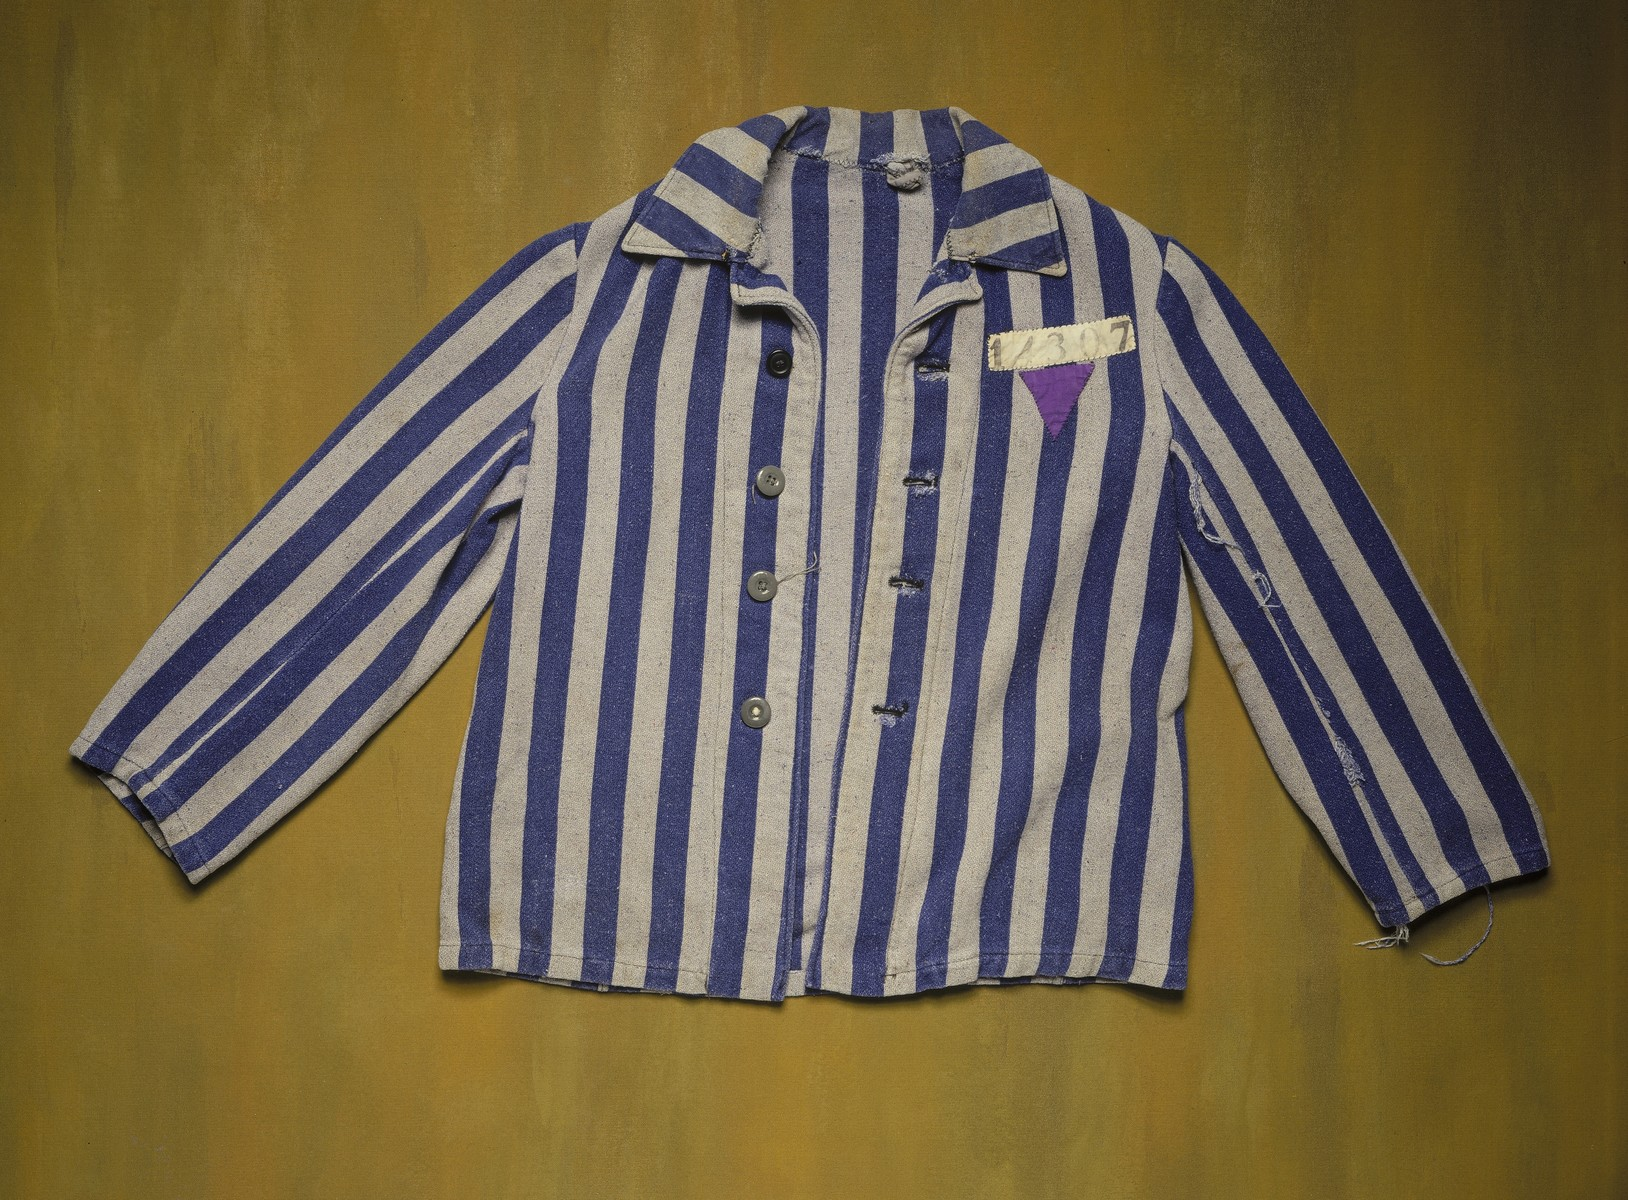 Striped prison jacket with an inverted purple triangle badge worn by Matthaeus Pibal, a Jehovah's Witness, during his imprisonment at the Dachau concentration camp.  The purple triangle badge was used to identify the prisoner as a Jehovah's Witness.